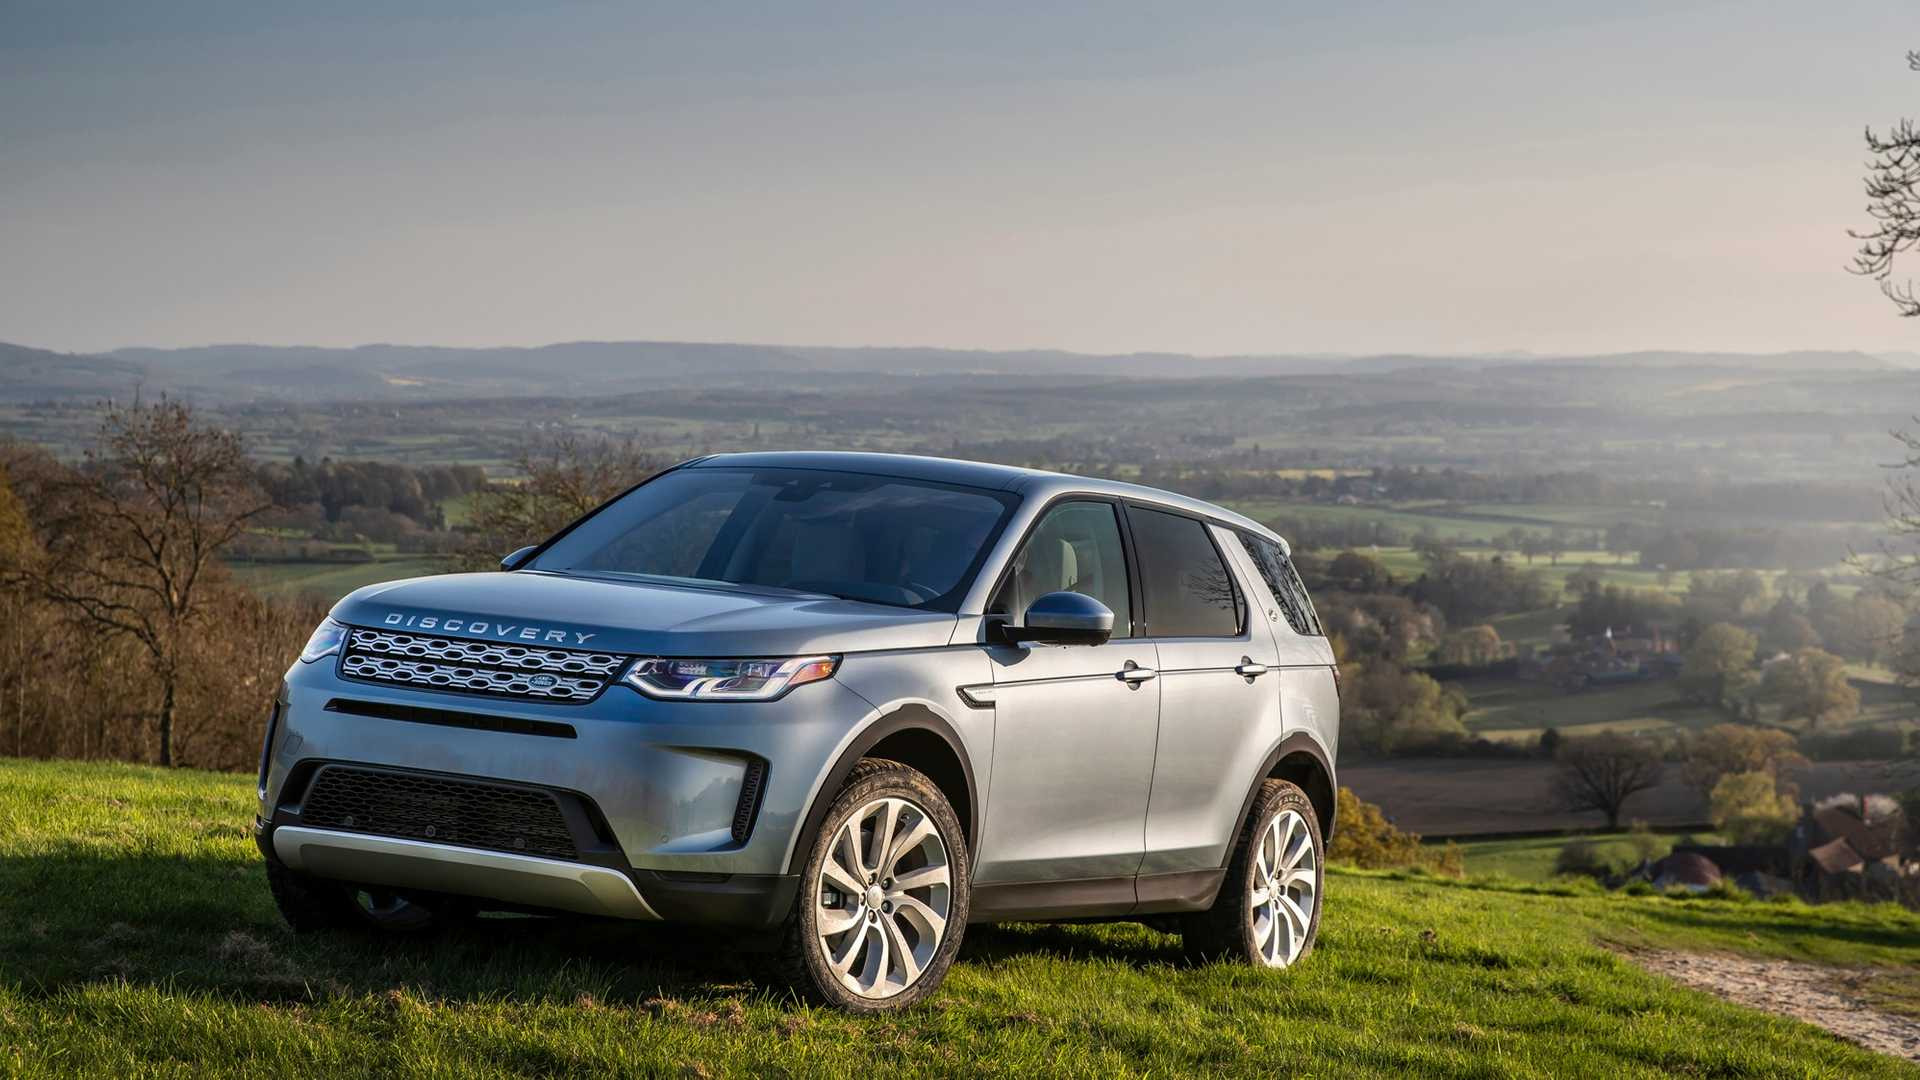 2020-land-rover-discovery-sport-44